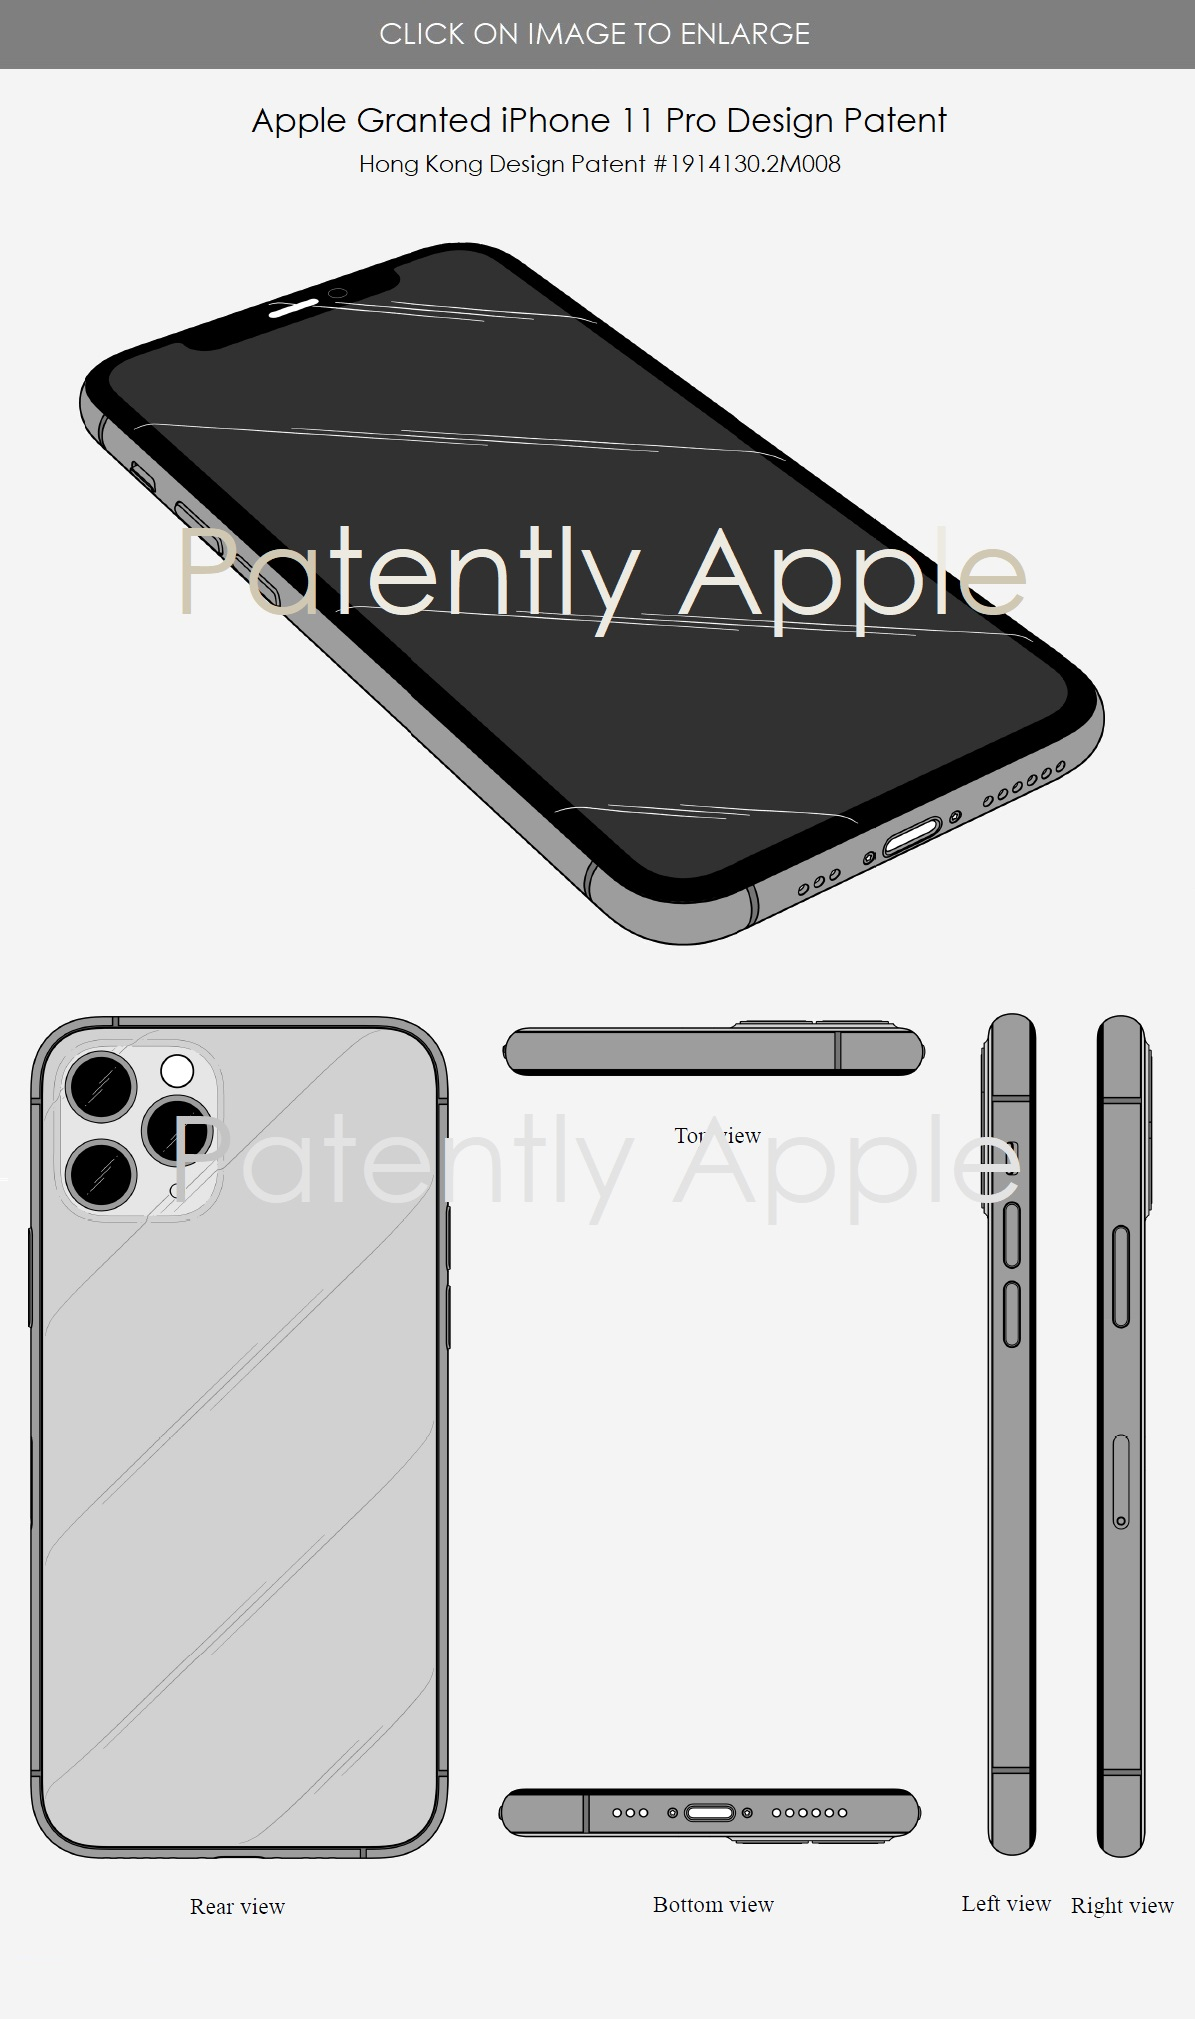 Www Pro Design Com apple won 17 design patents today in hong kong covering